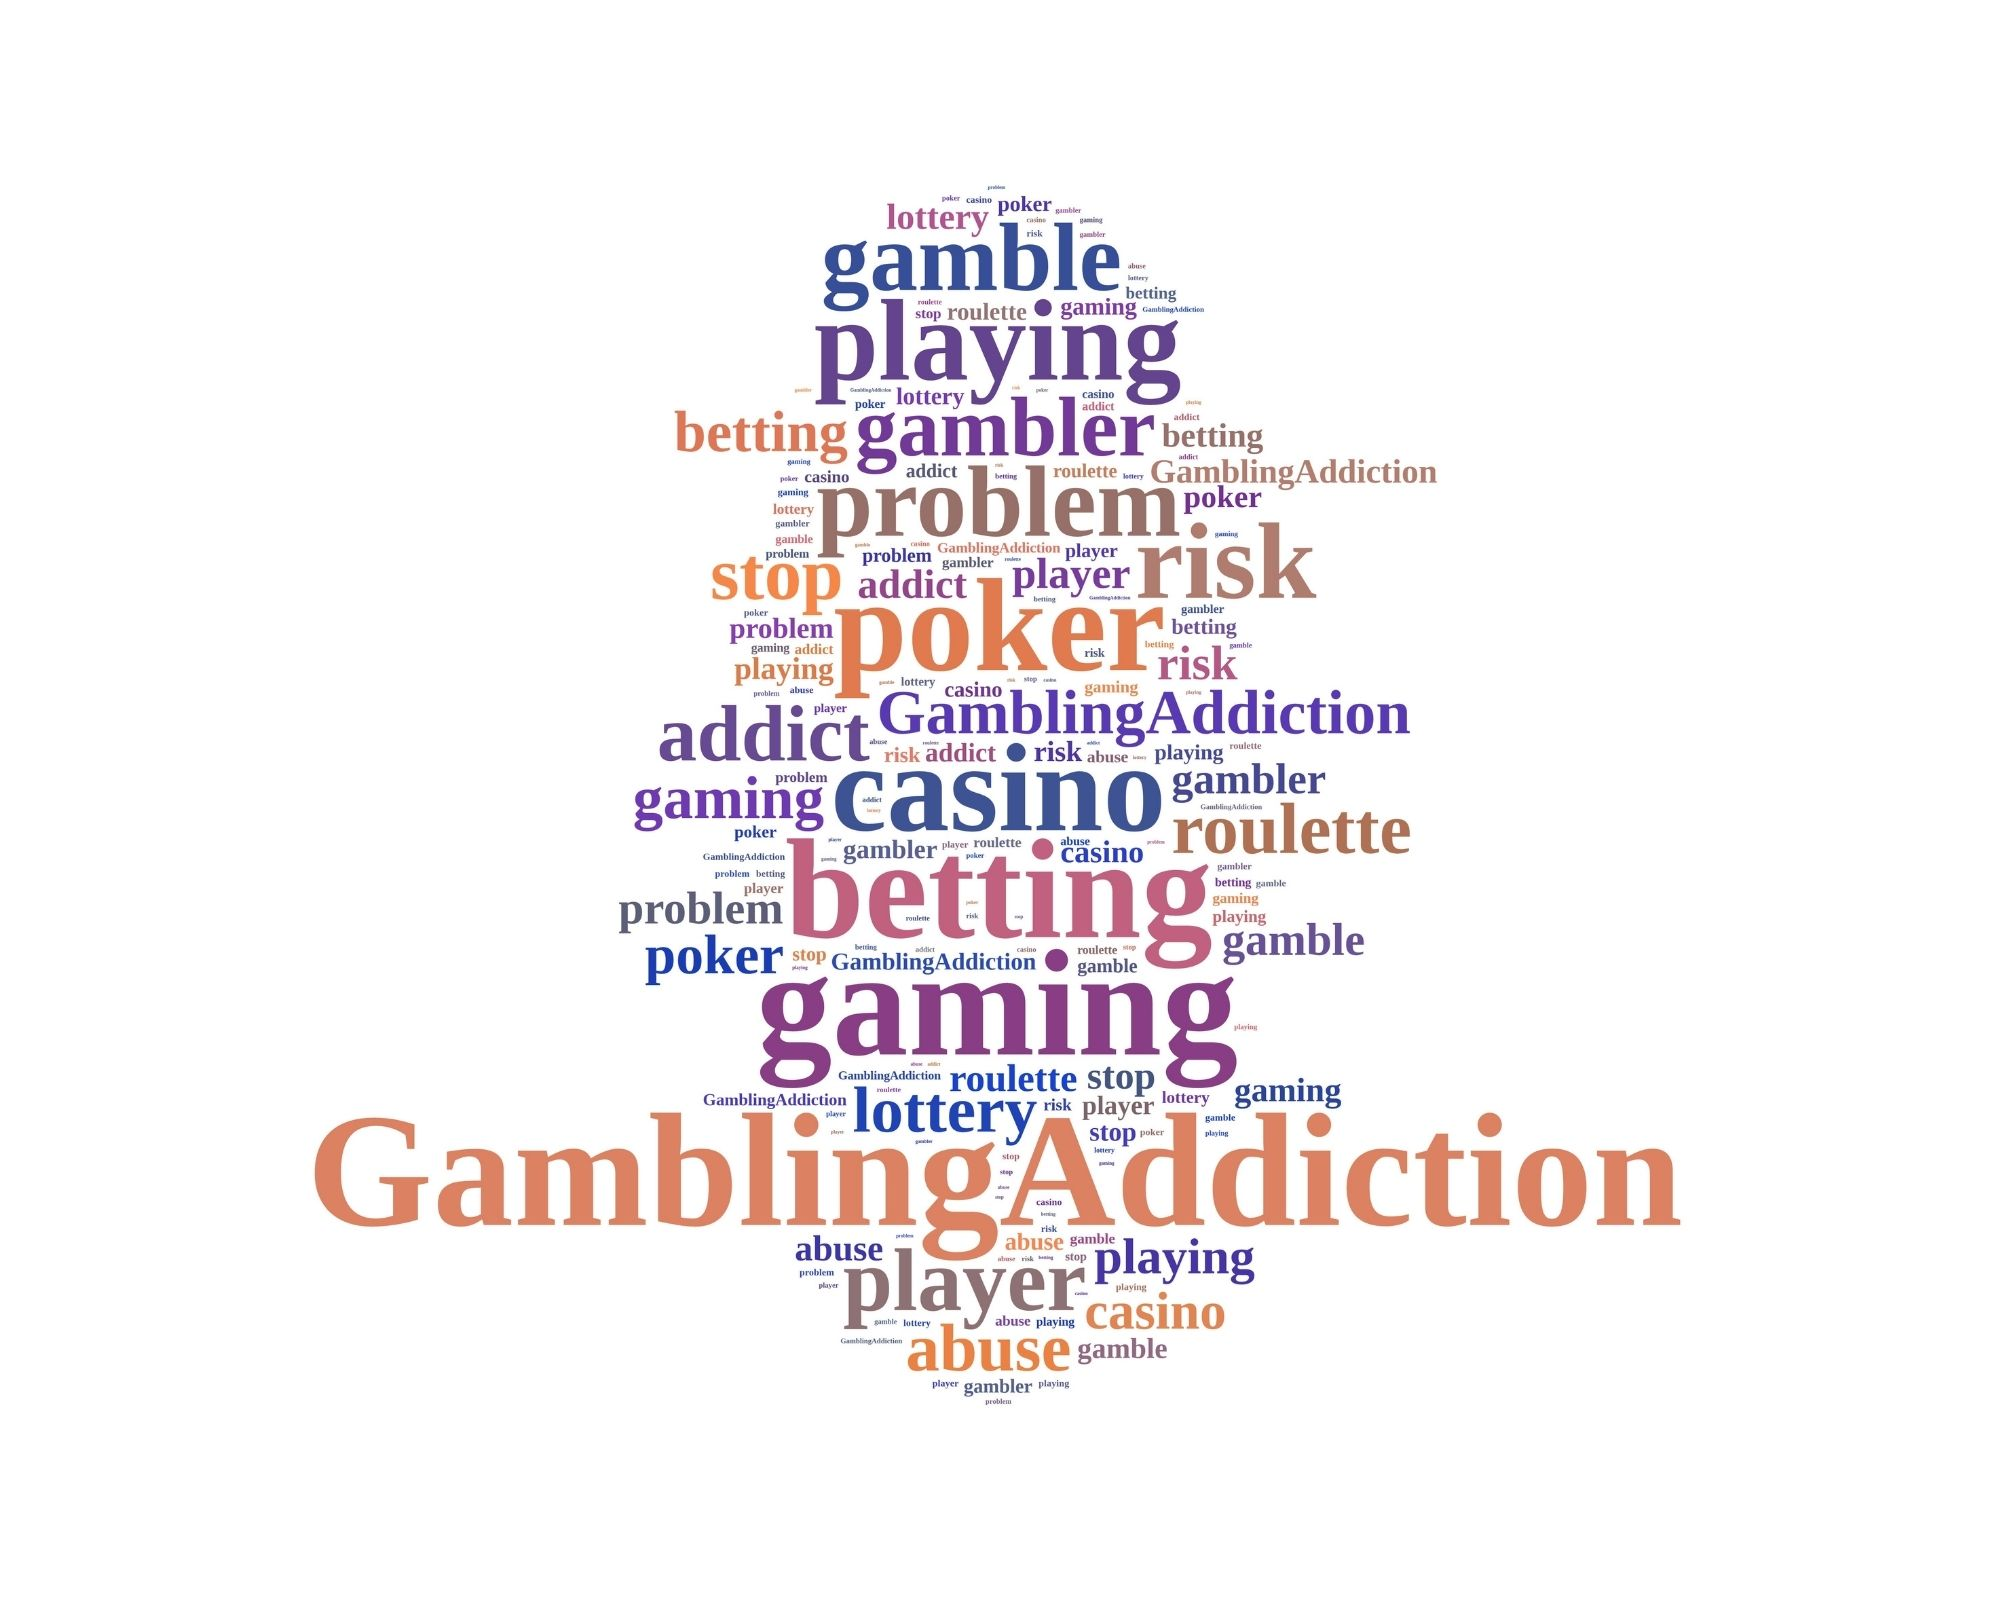 The dangers of gambling explained